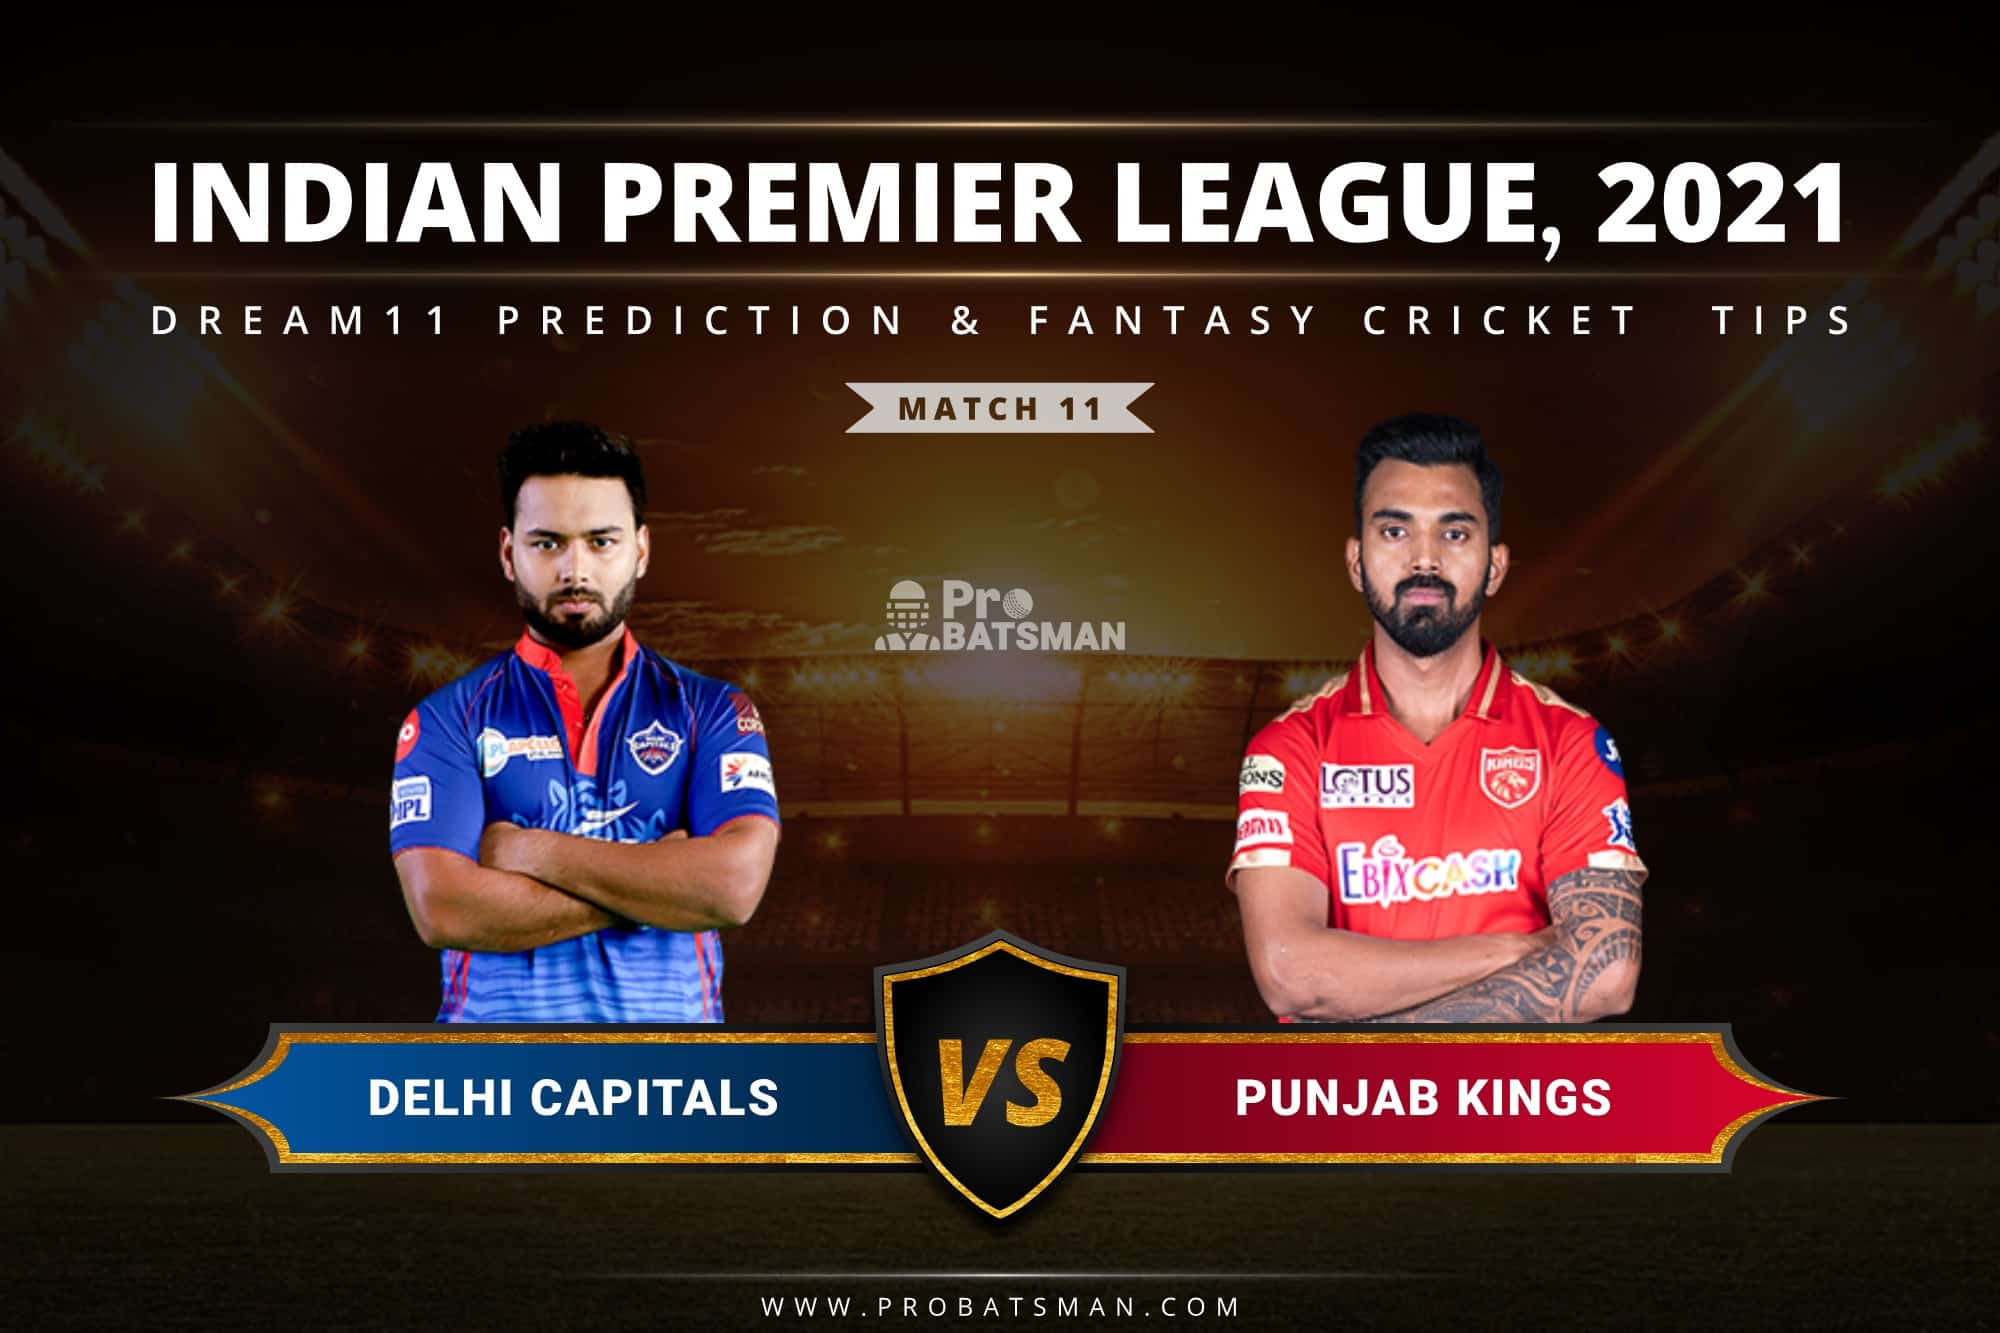 DC vs PBKS Dream11 Prediction: Fantasy Cricket Tips, Playing XI, Pitch Report, Stats & Injury Updates of Match 11, IPL 2021